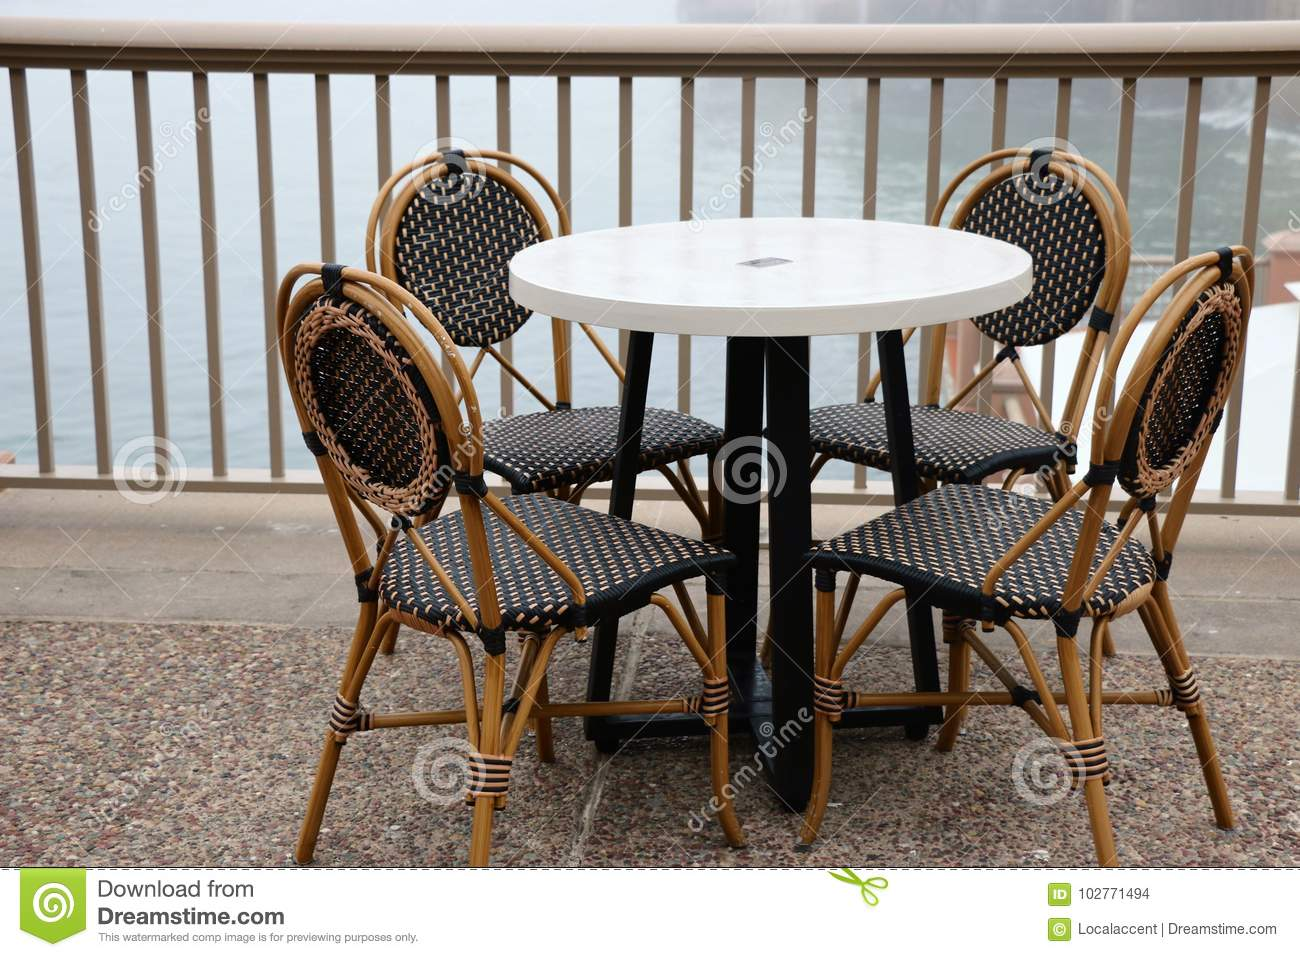 Strange Black And White Cafe Chairs And Table Stock Photo Image Inzonedesignstudio Interior Chair Design Inzonedesignstudiocom